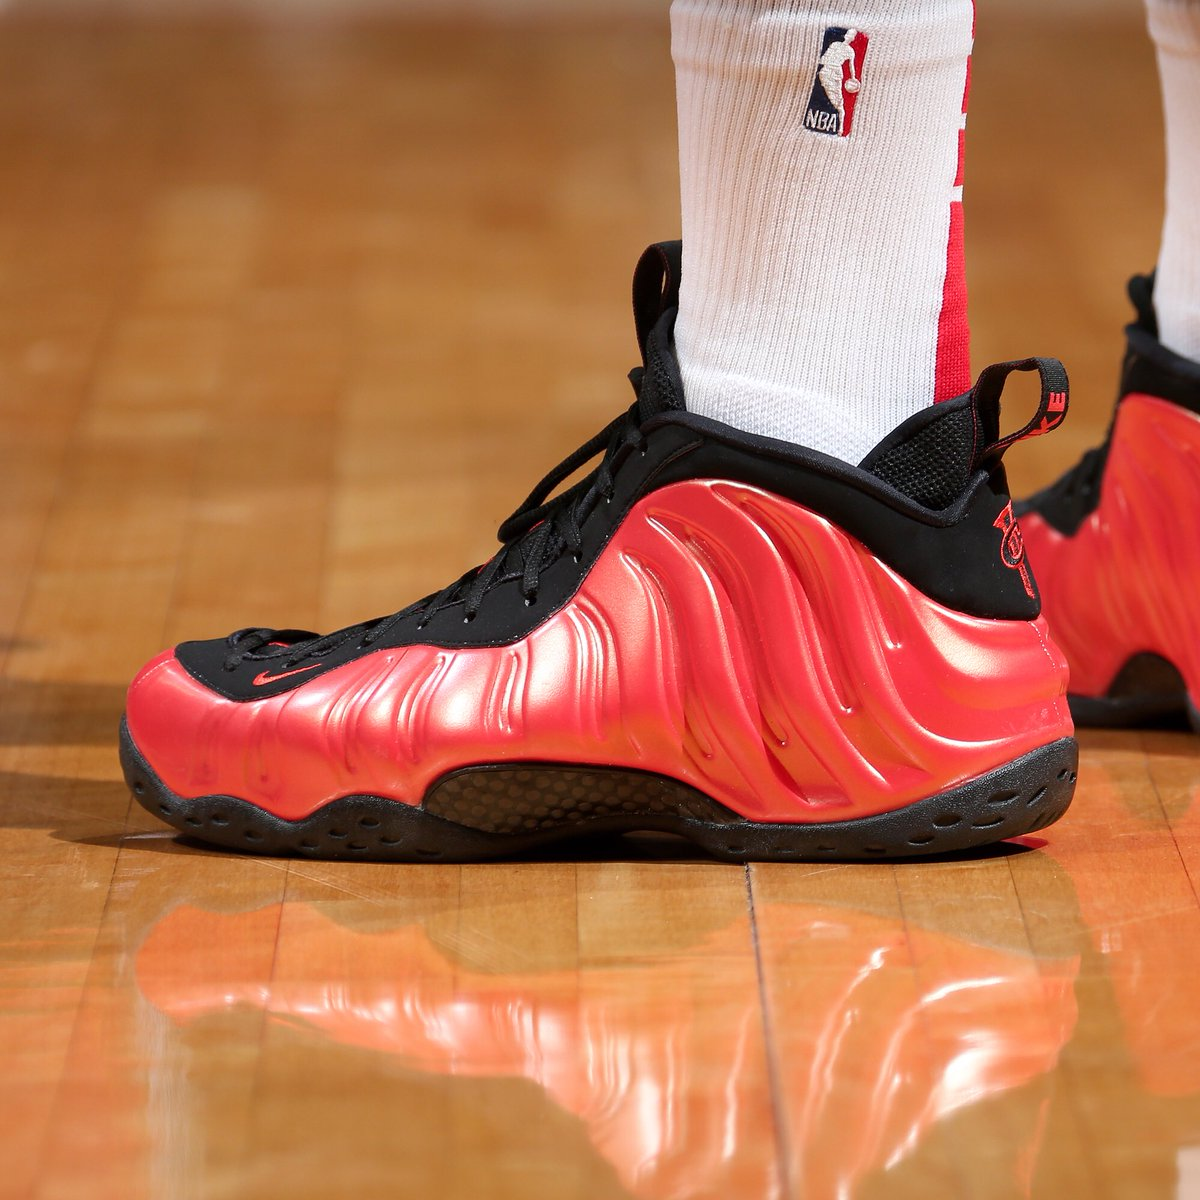 online store 5071e a2752 solewatch keefmorris in the habanero red nike air foamposite one ned dishman